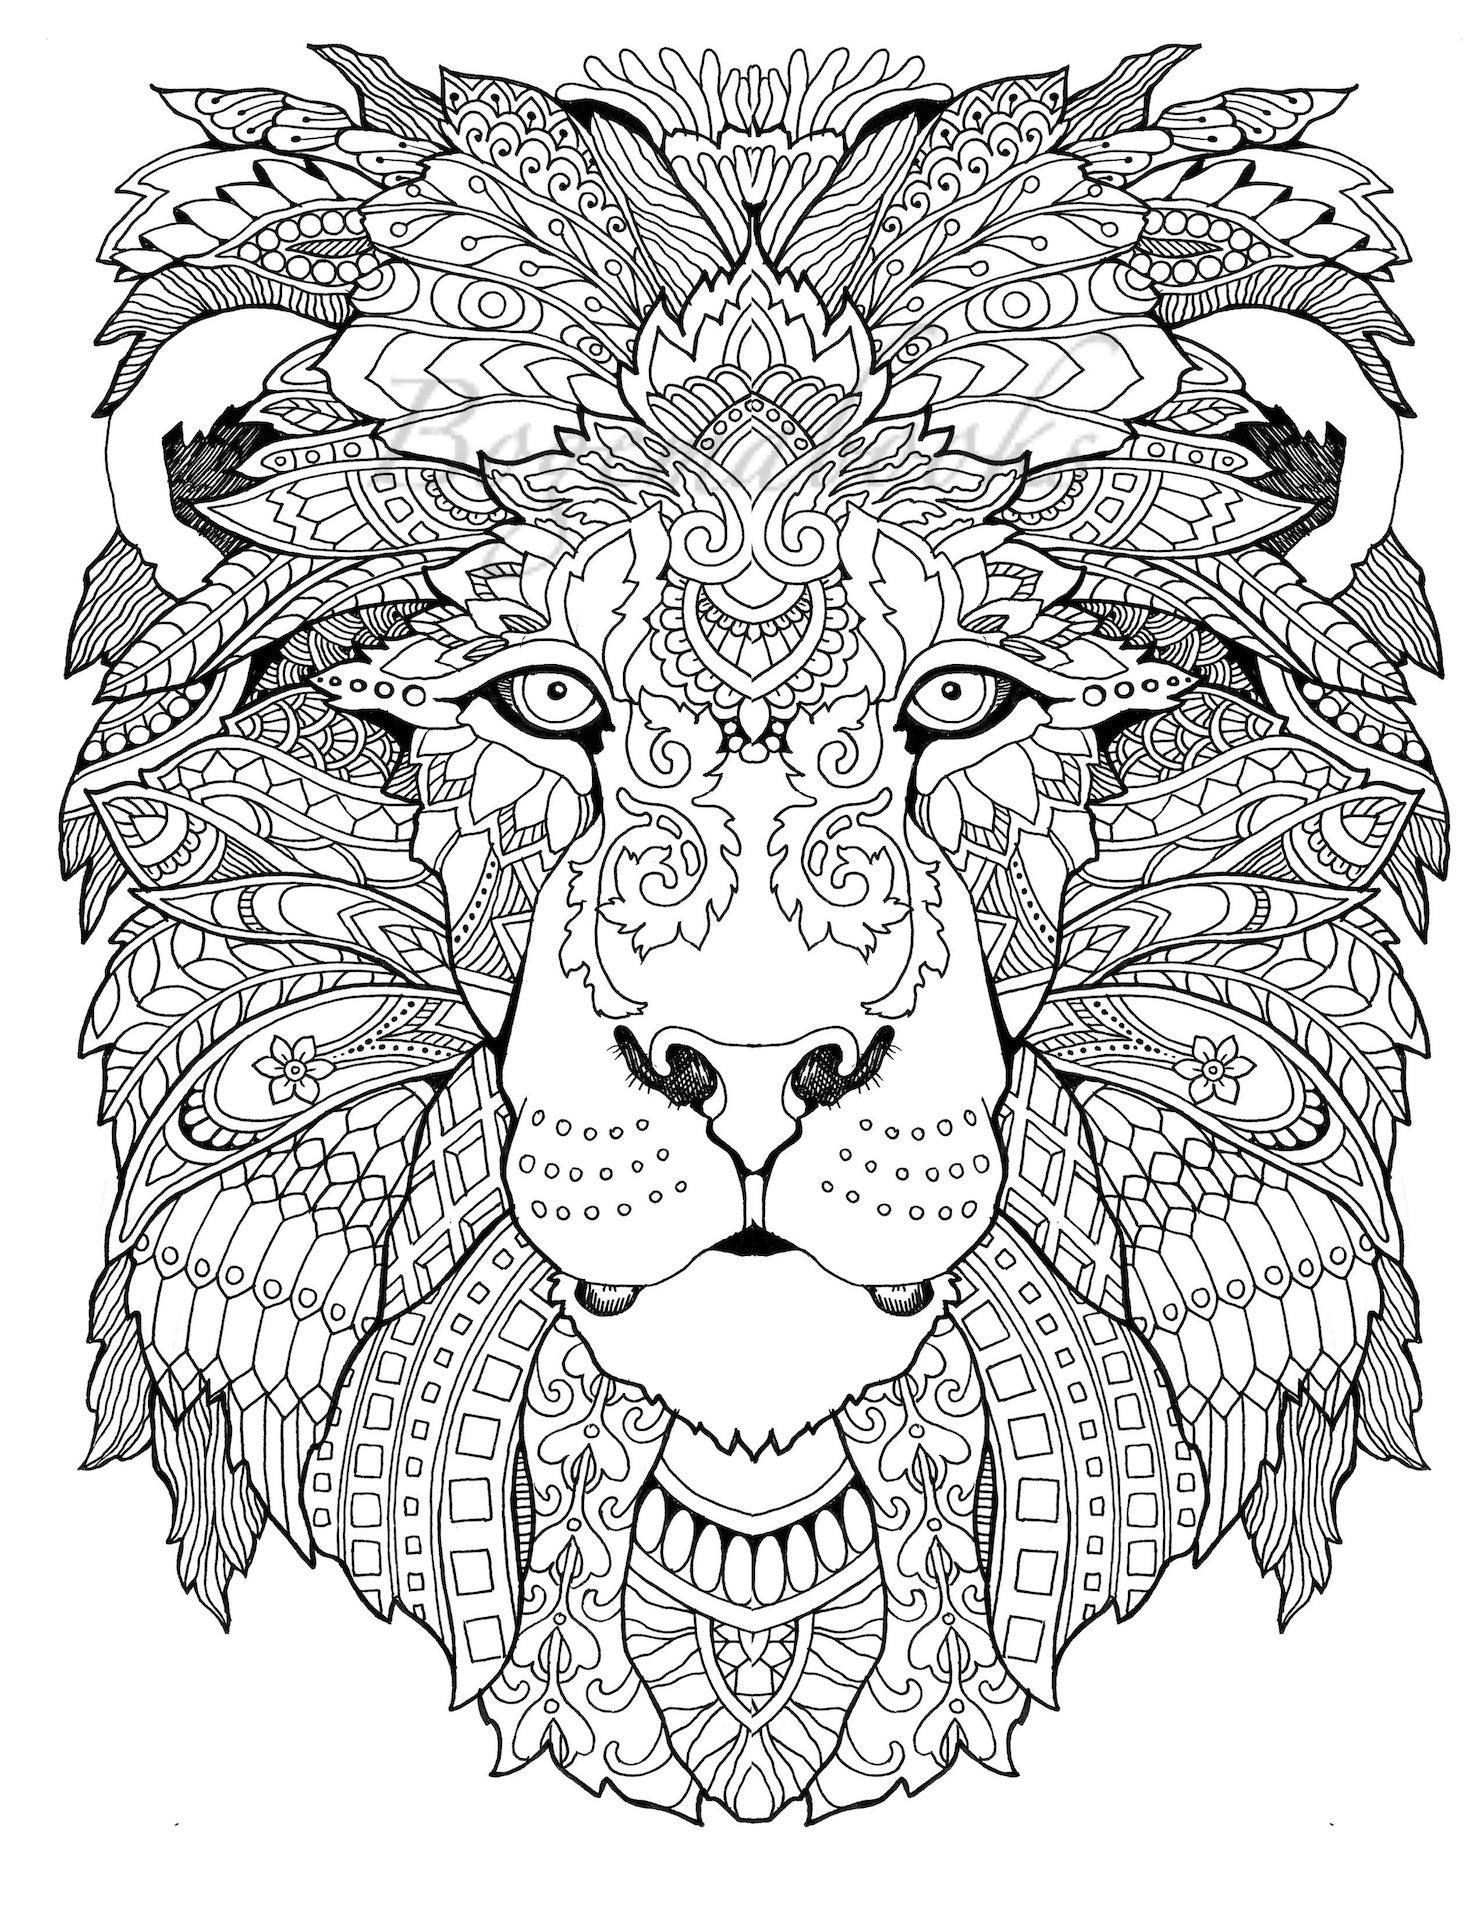 Mindfulness Colouring Lion